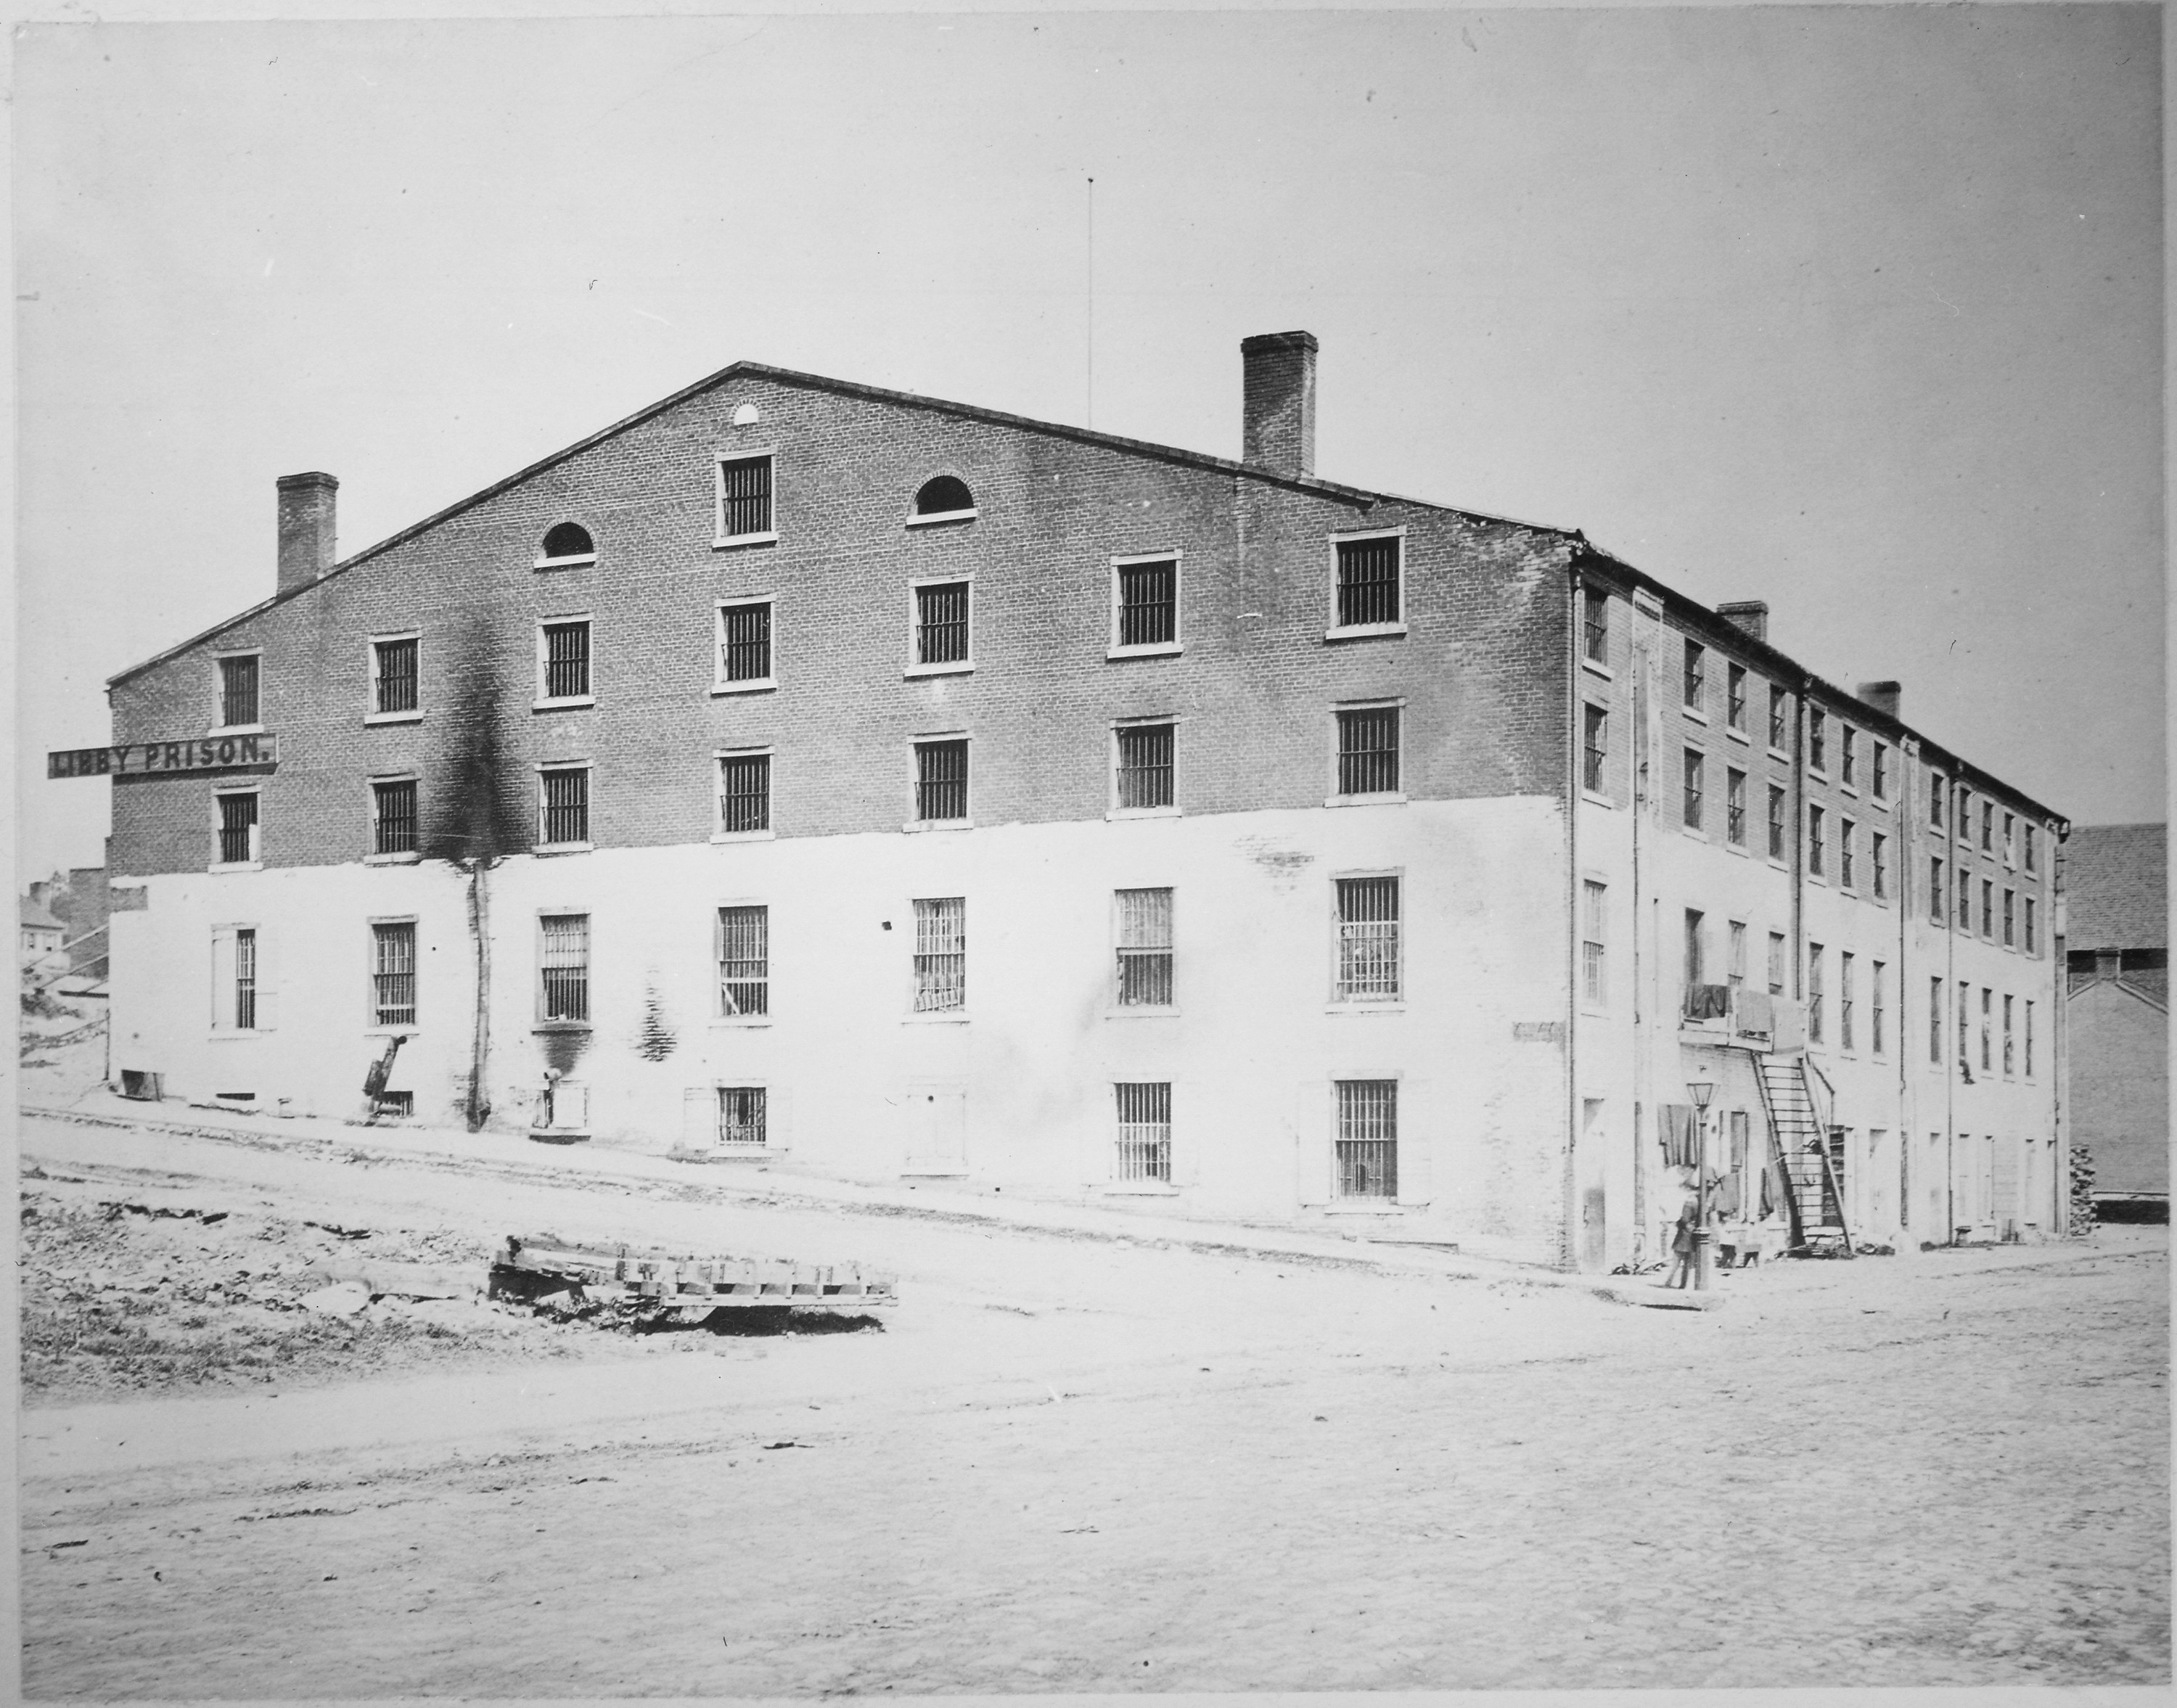 Libby Prison, NARA image, from Wikipedia